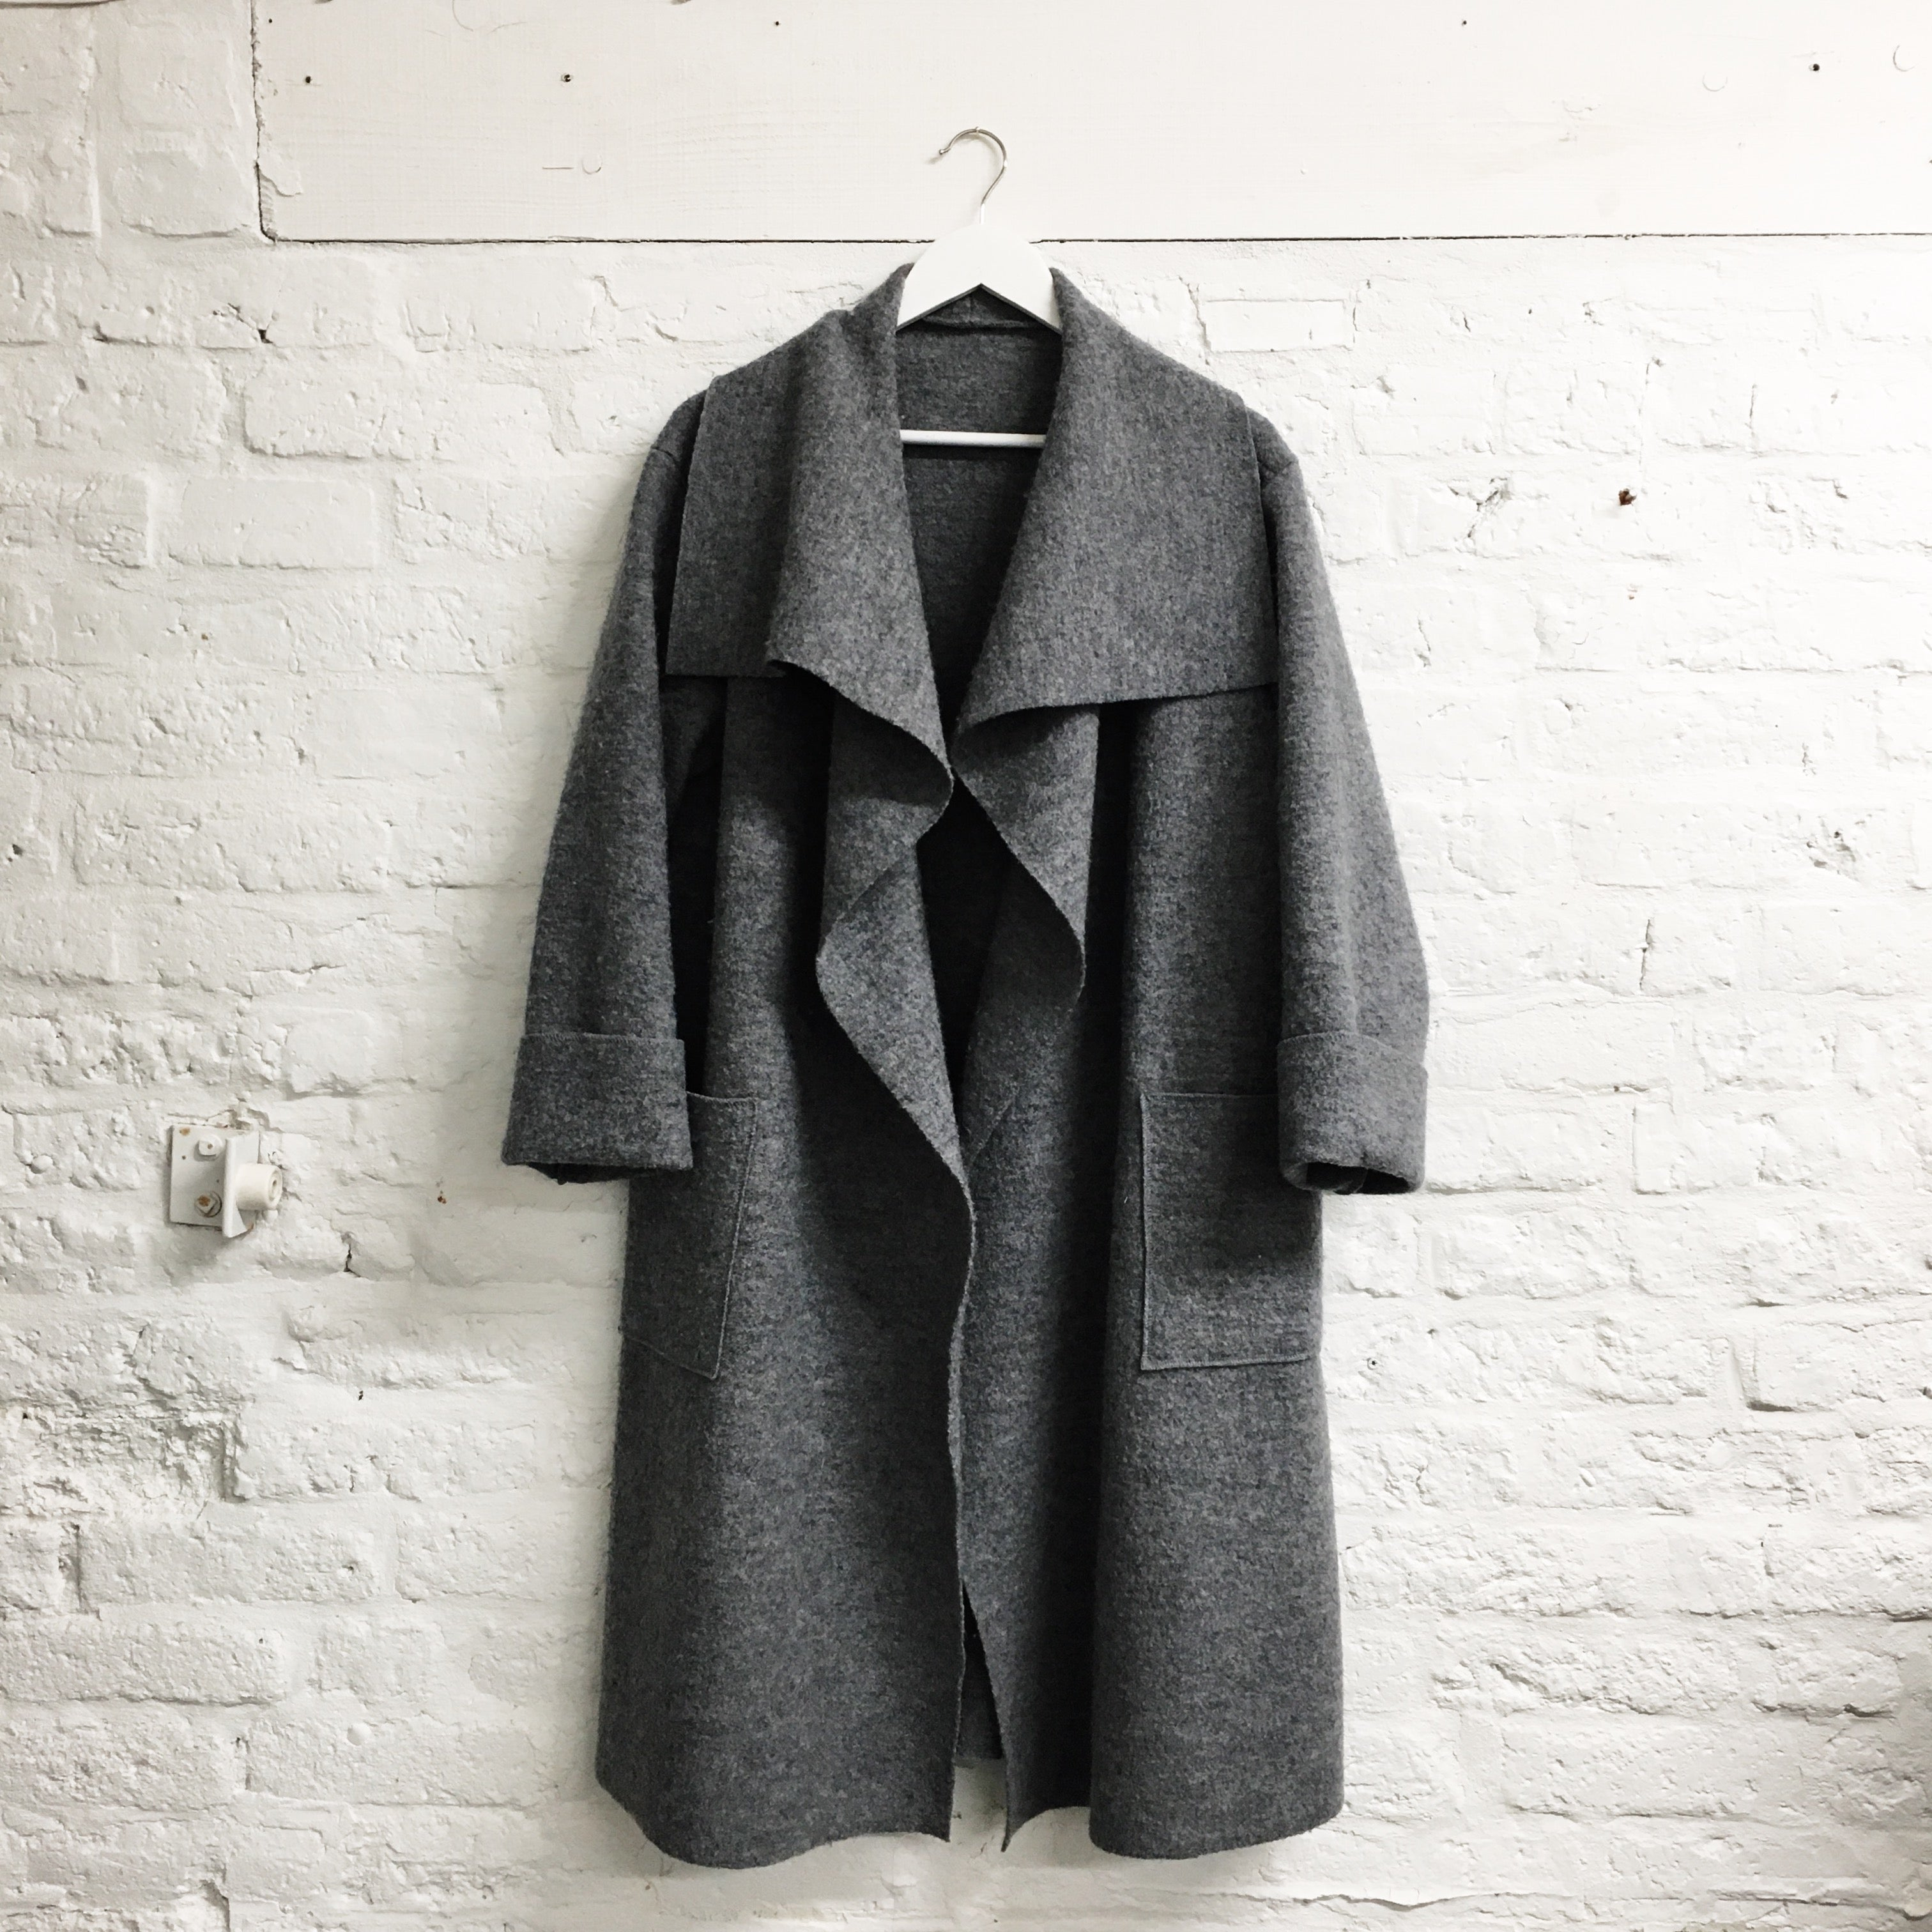 The Bianca Coat